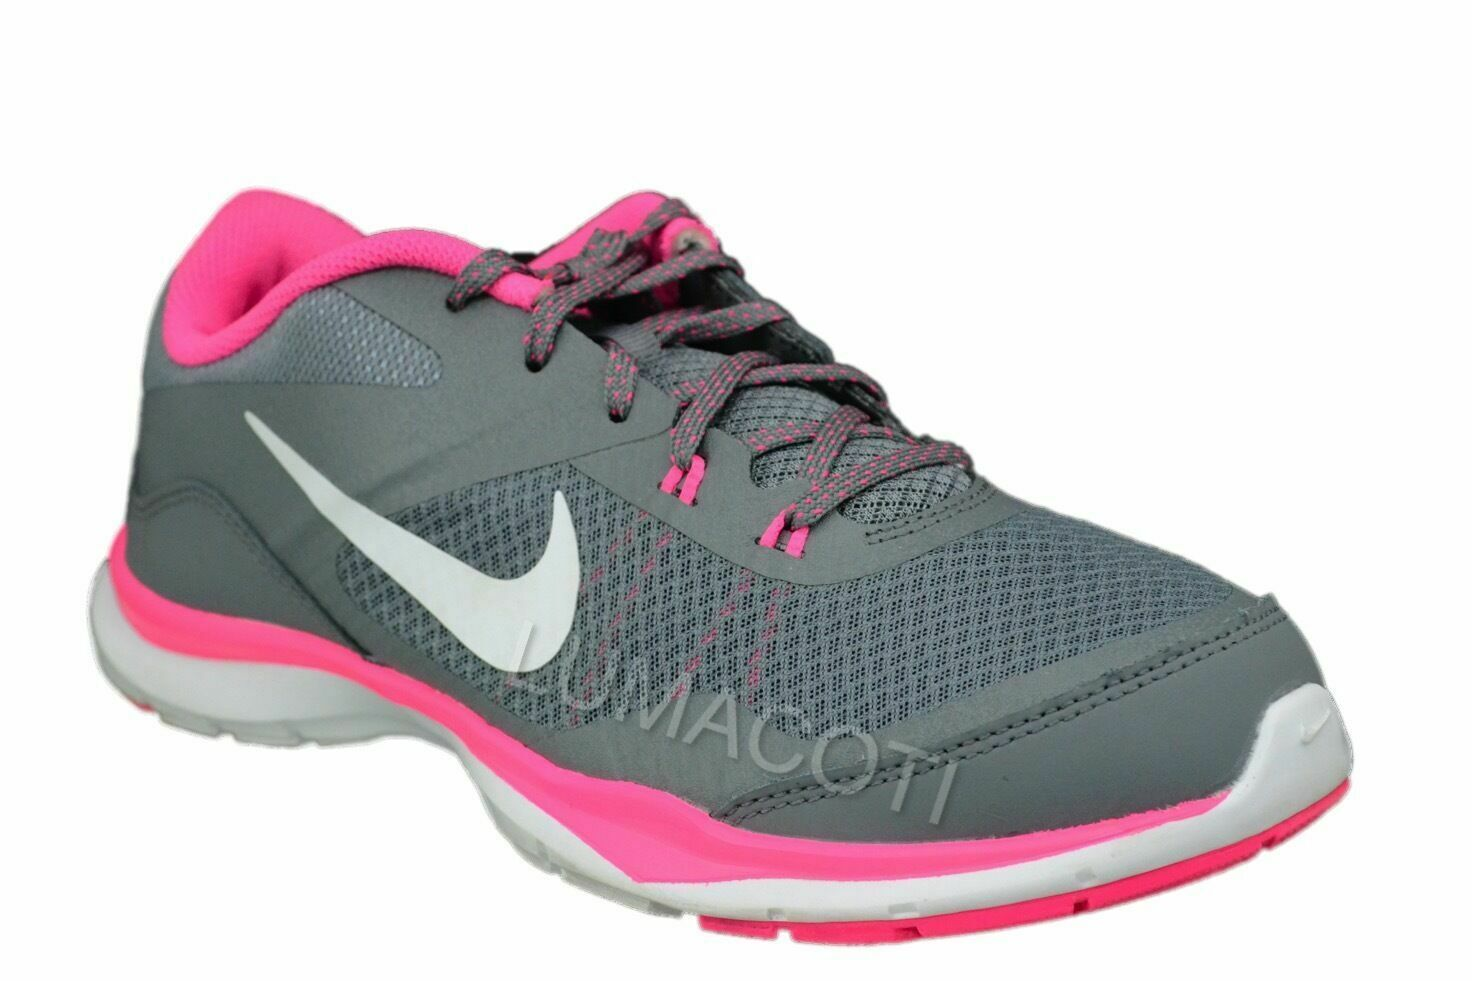 Womens Nike Flex Trainer 5 Running Shoes - Grey/Pink, Size 9 [724858 003] - $55.99